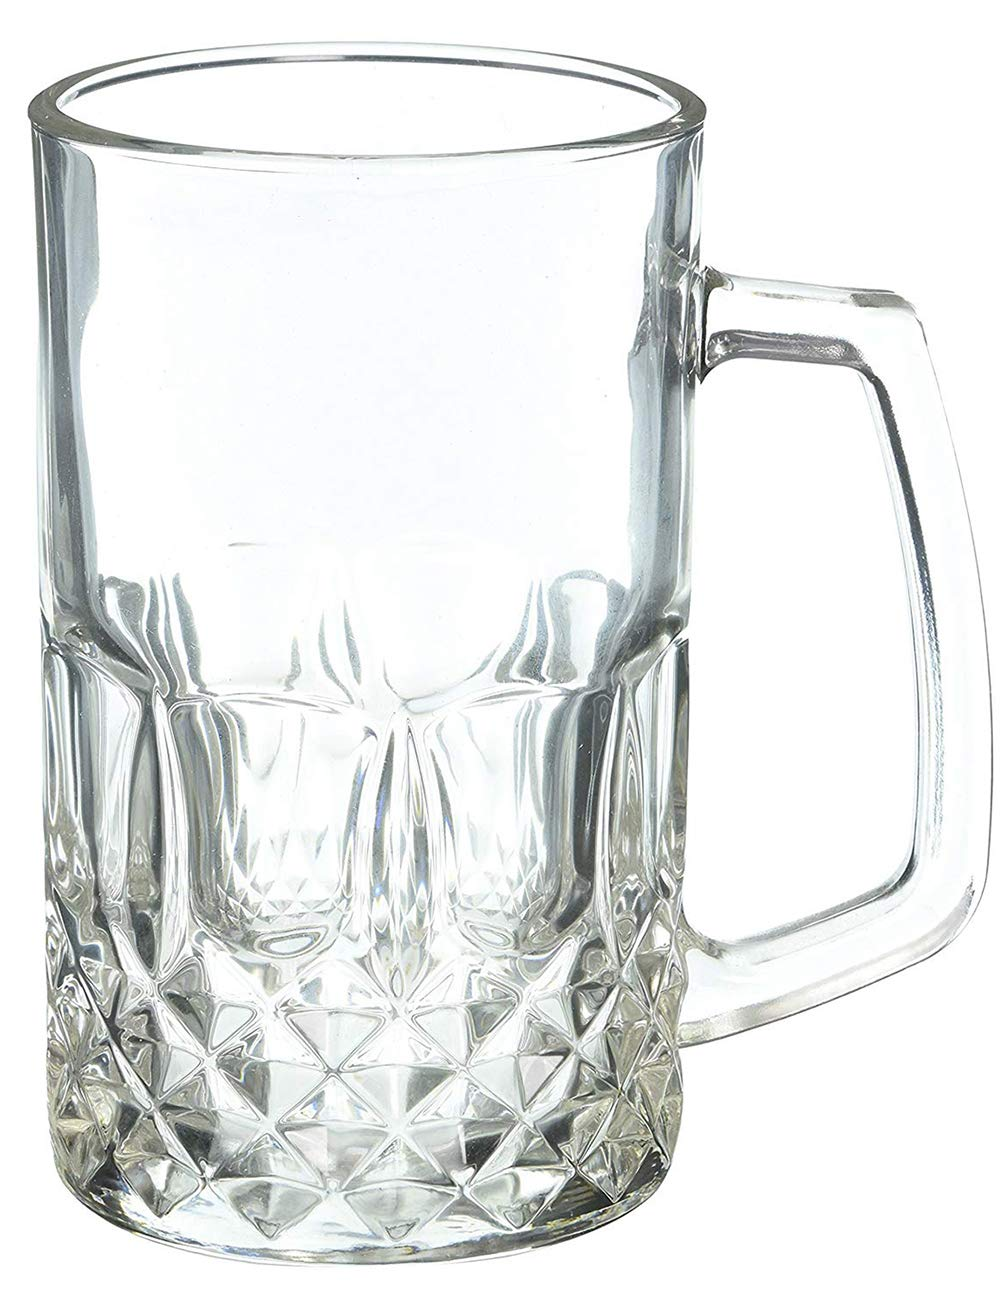 Momugs 20 Ounces Beer Stein Mugs, German Clear Large Tall Beer Glasses for Men, Set of 2